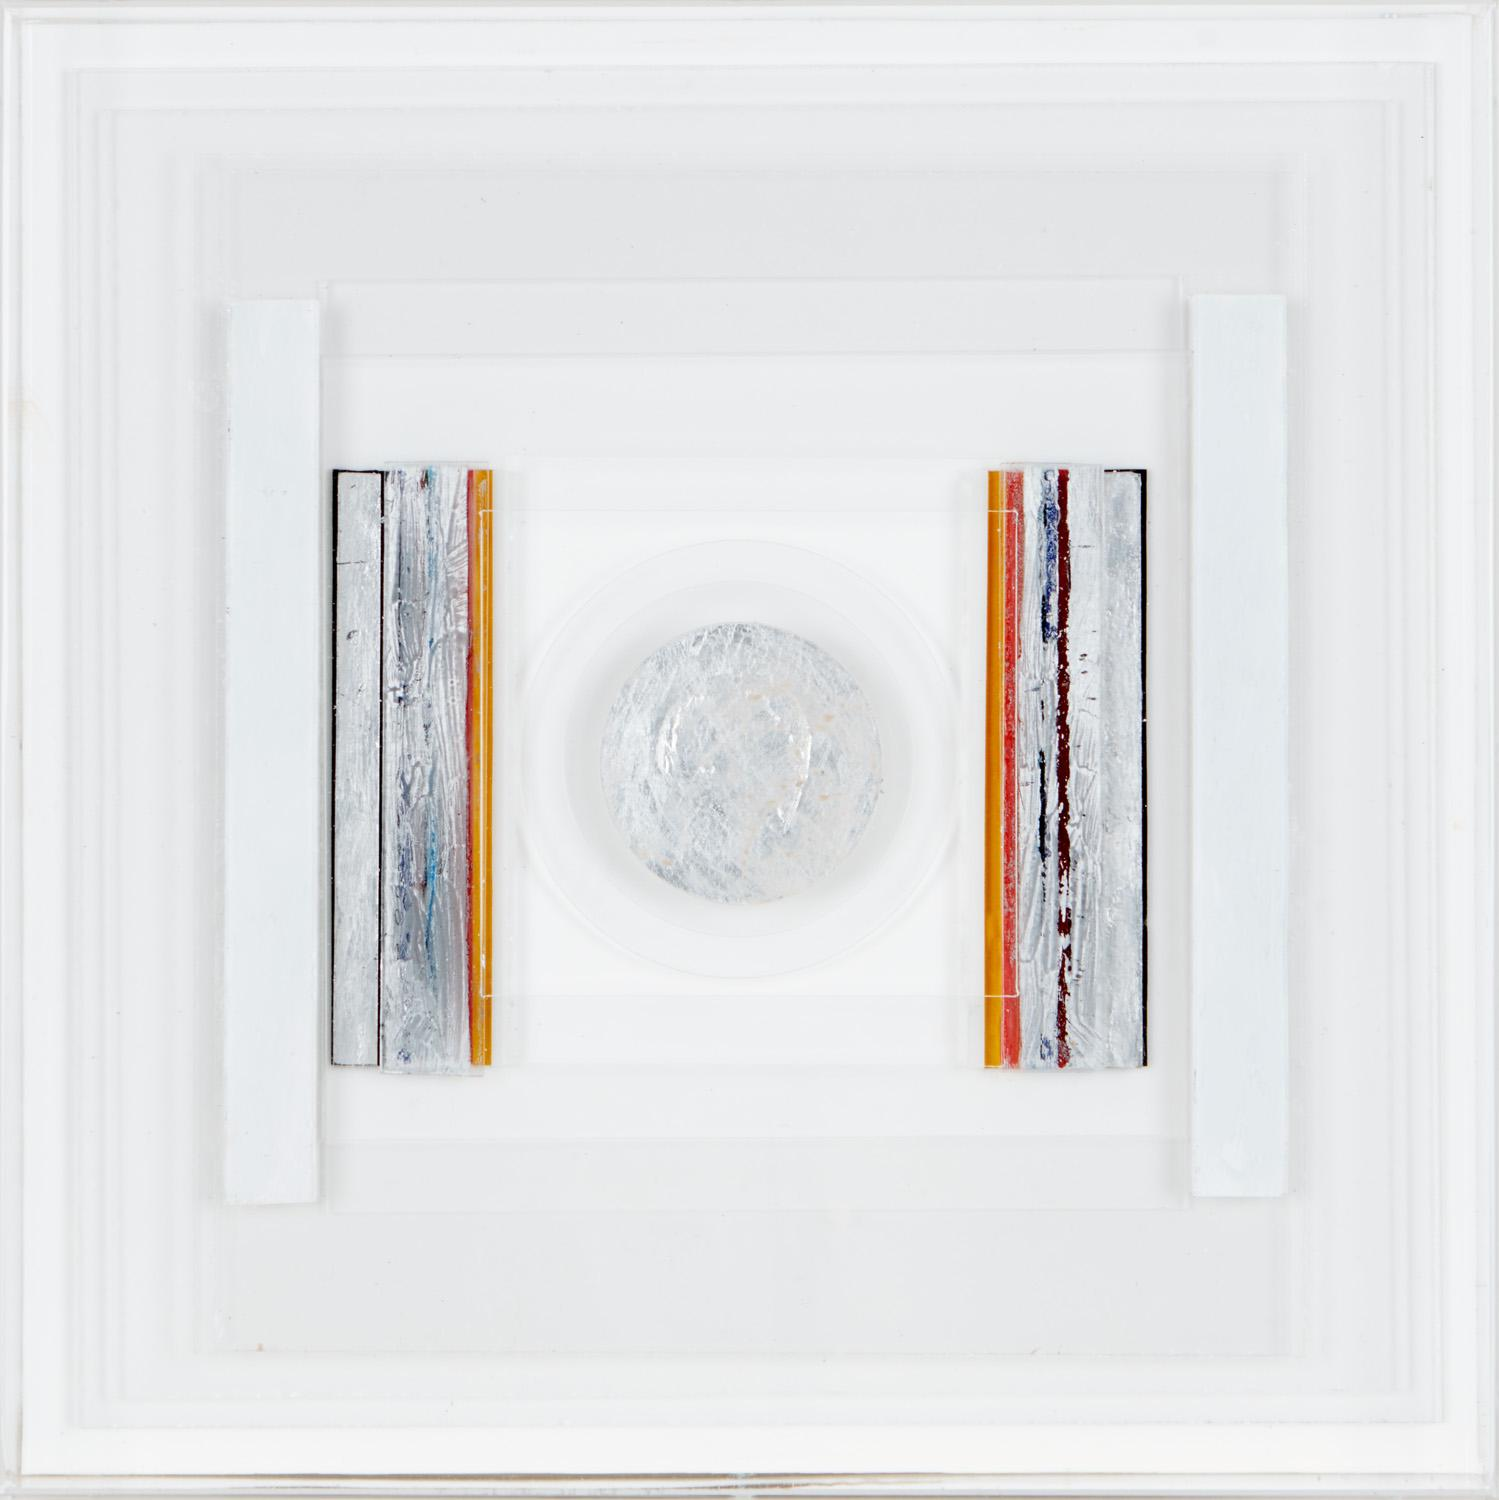 feiler-square-relief-lxii-2012 perspex 40x40cm contemporary british art